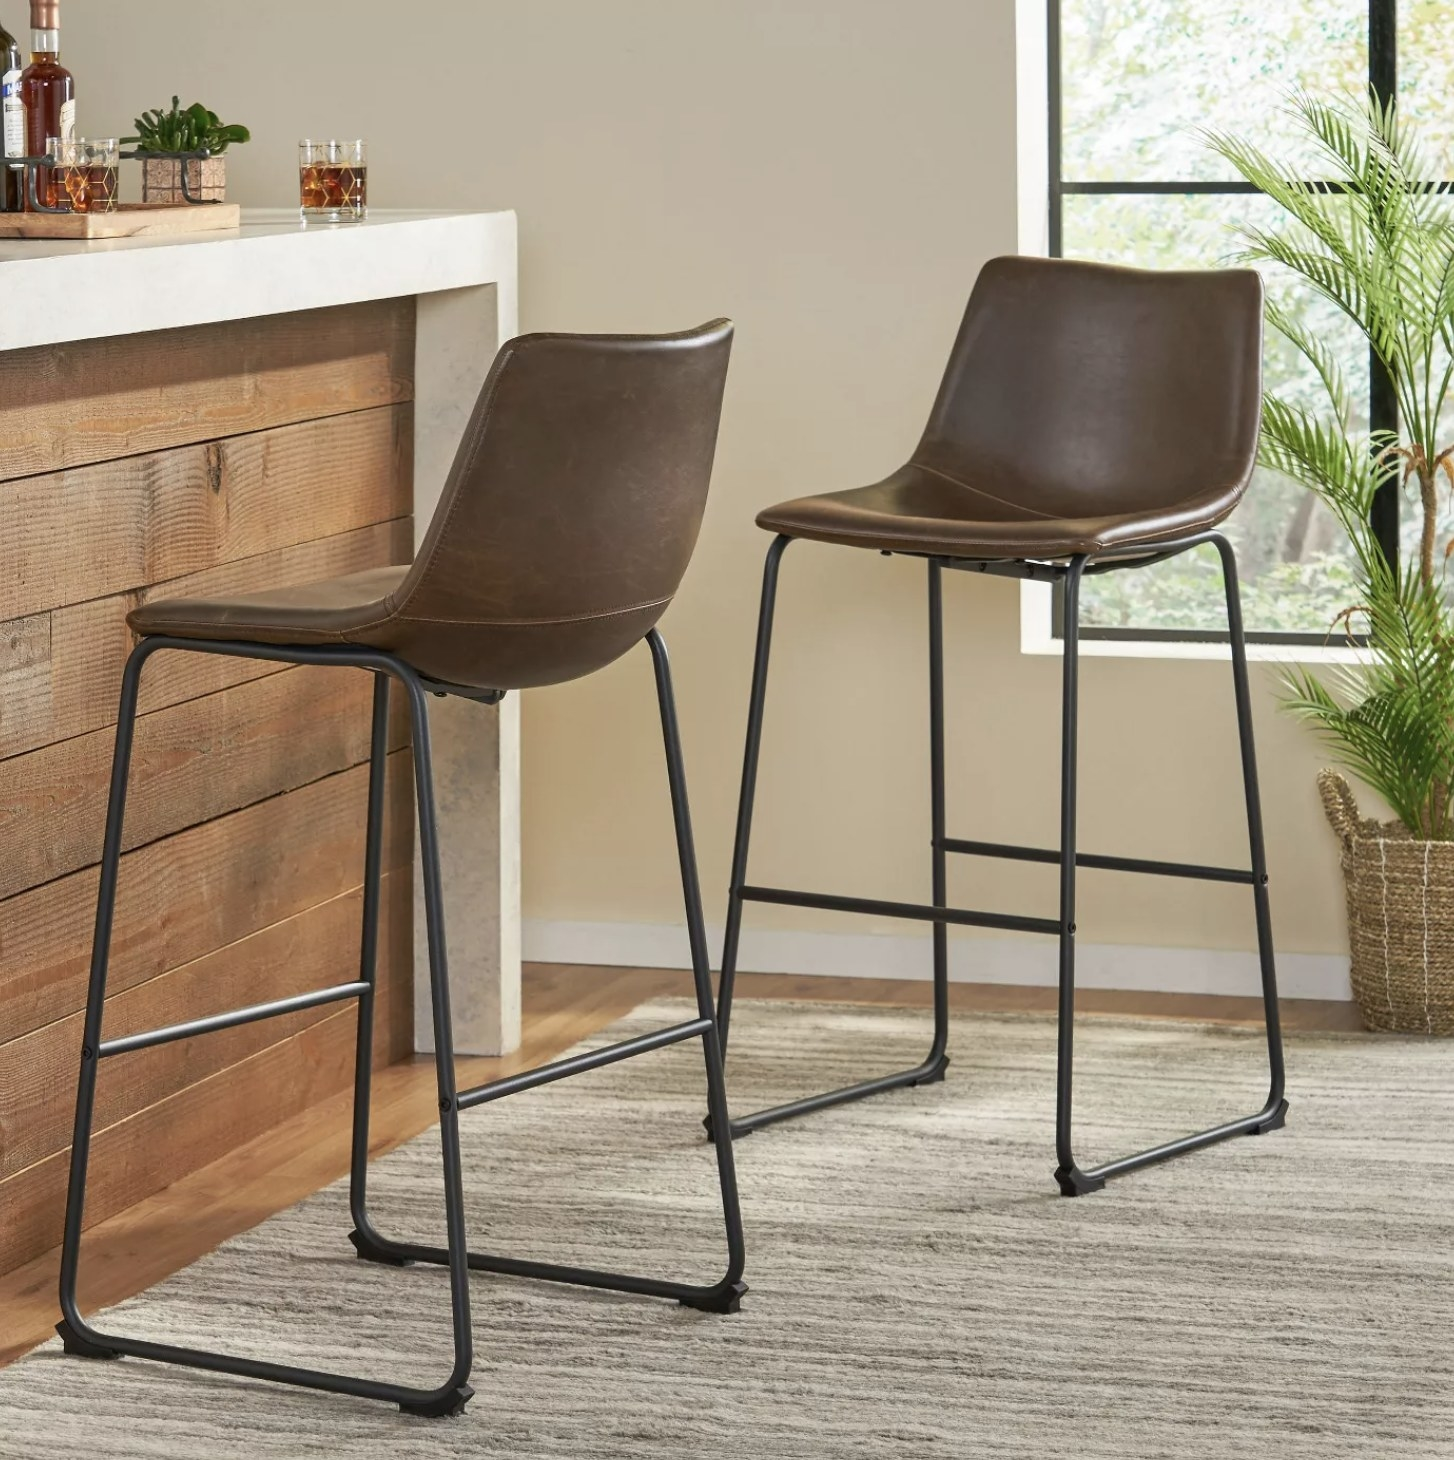 Two brown faux leather barstools